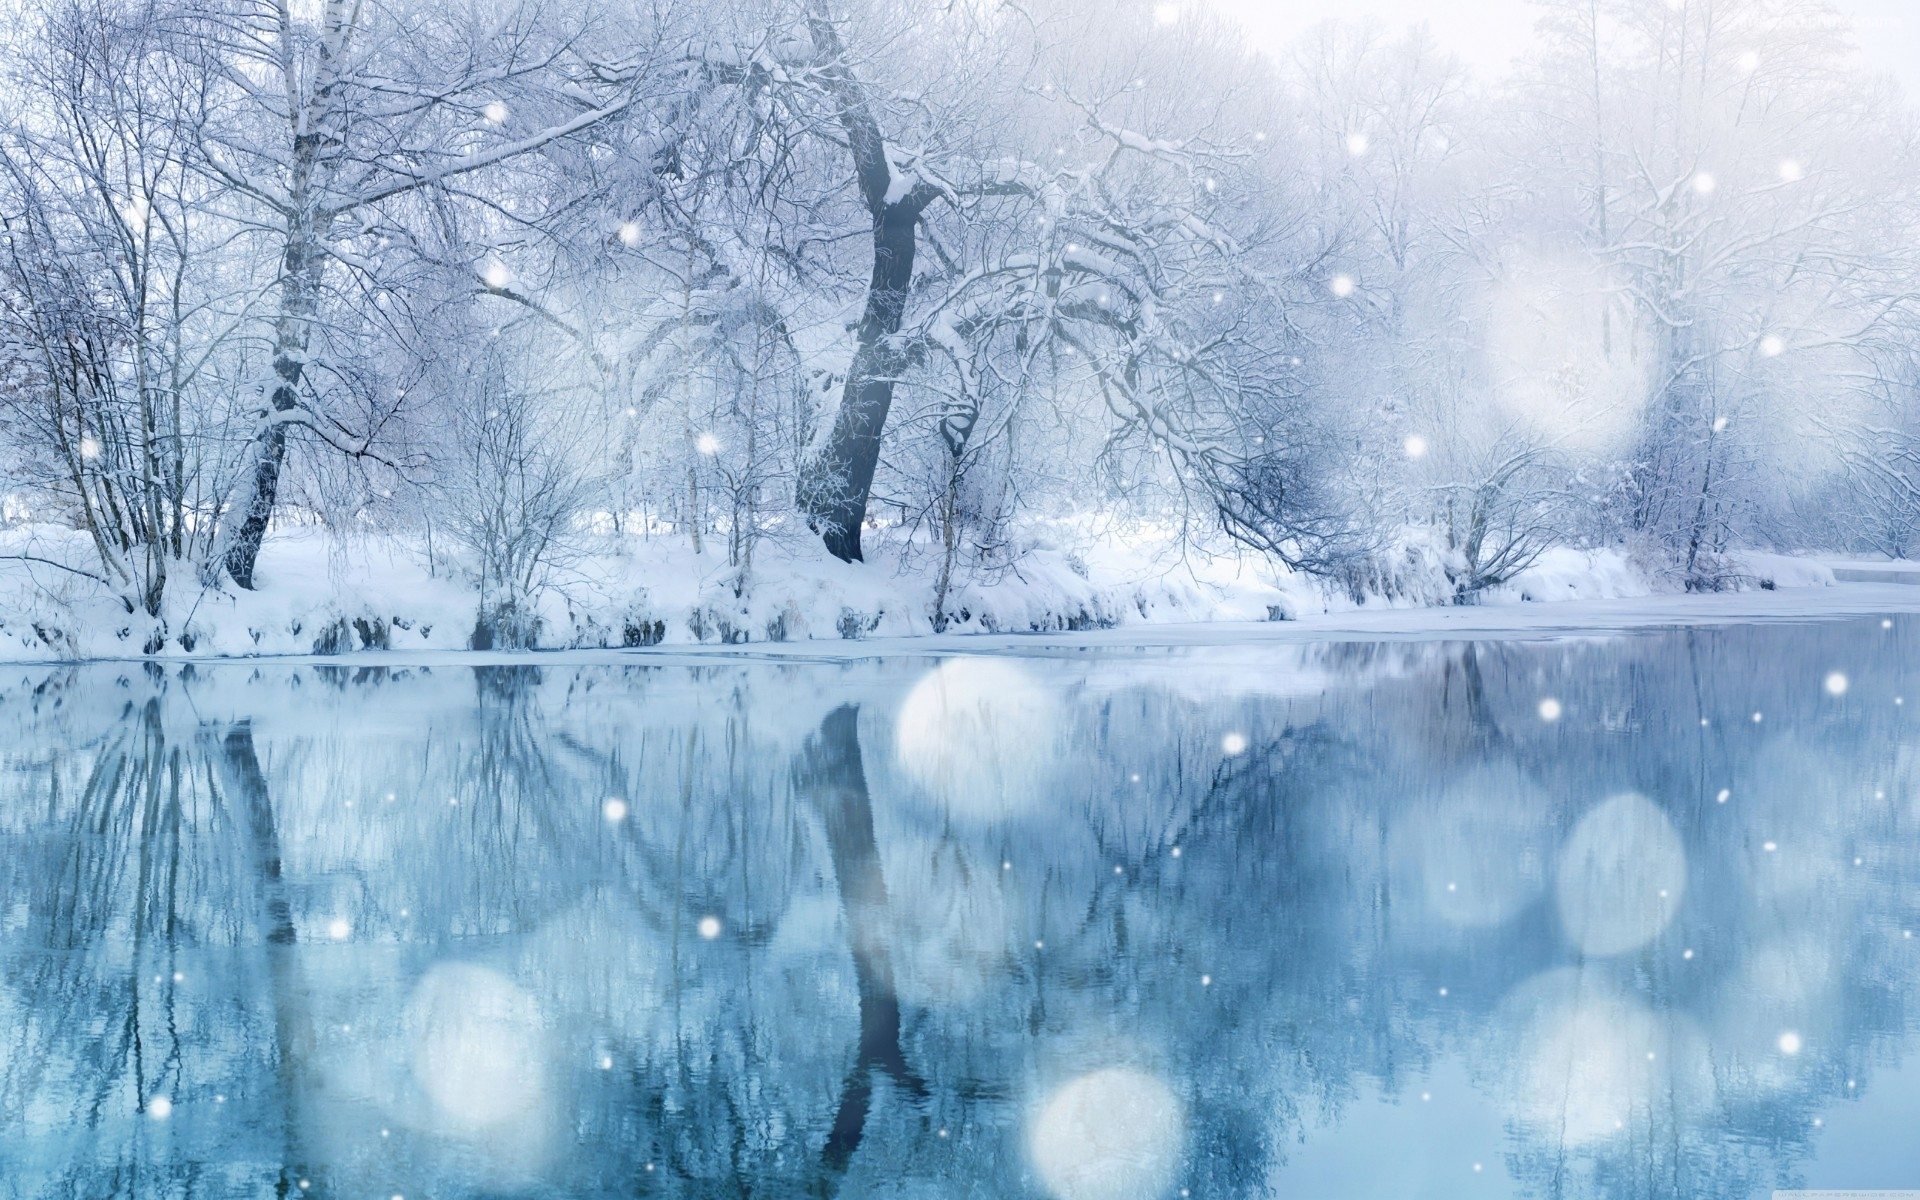 winter-landscape-with-bright-reflections-for-wallpaper-5918